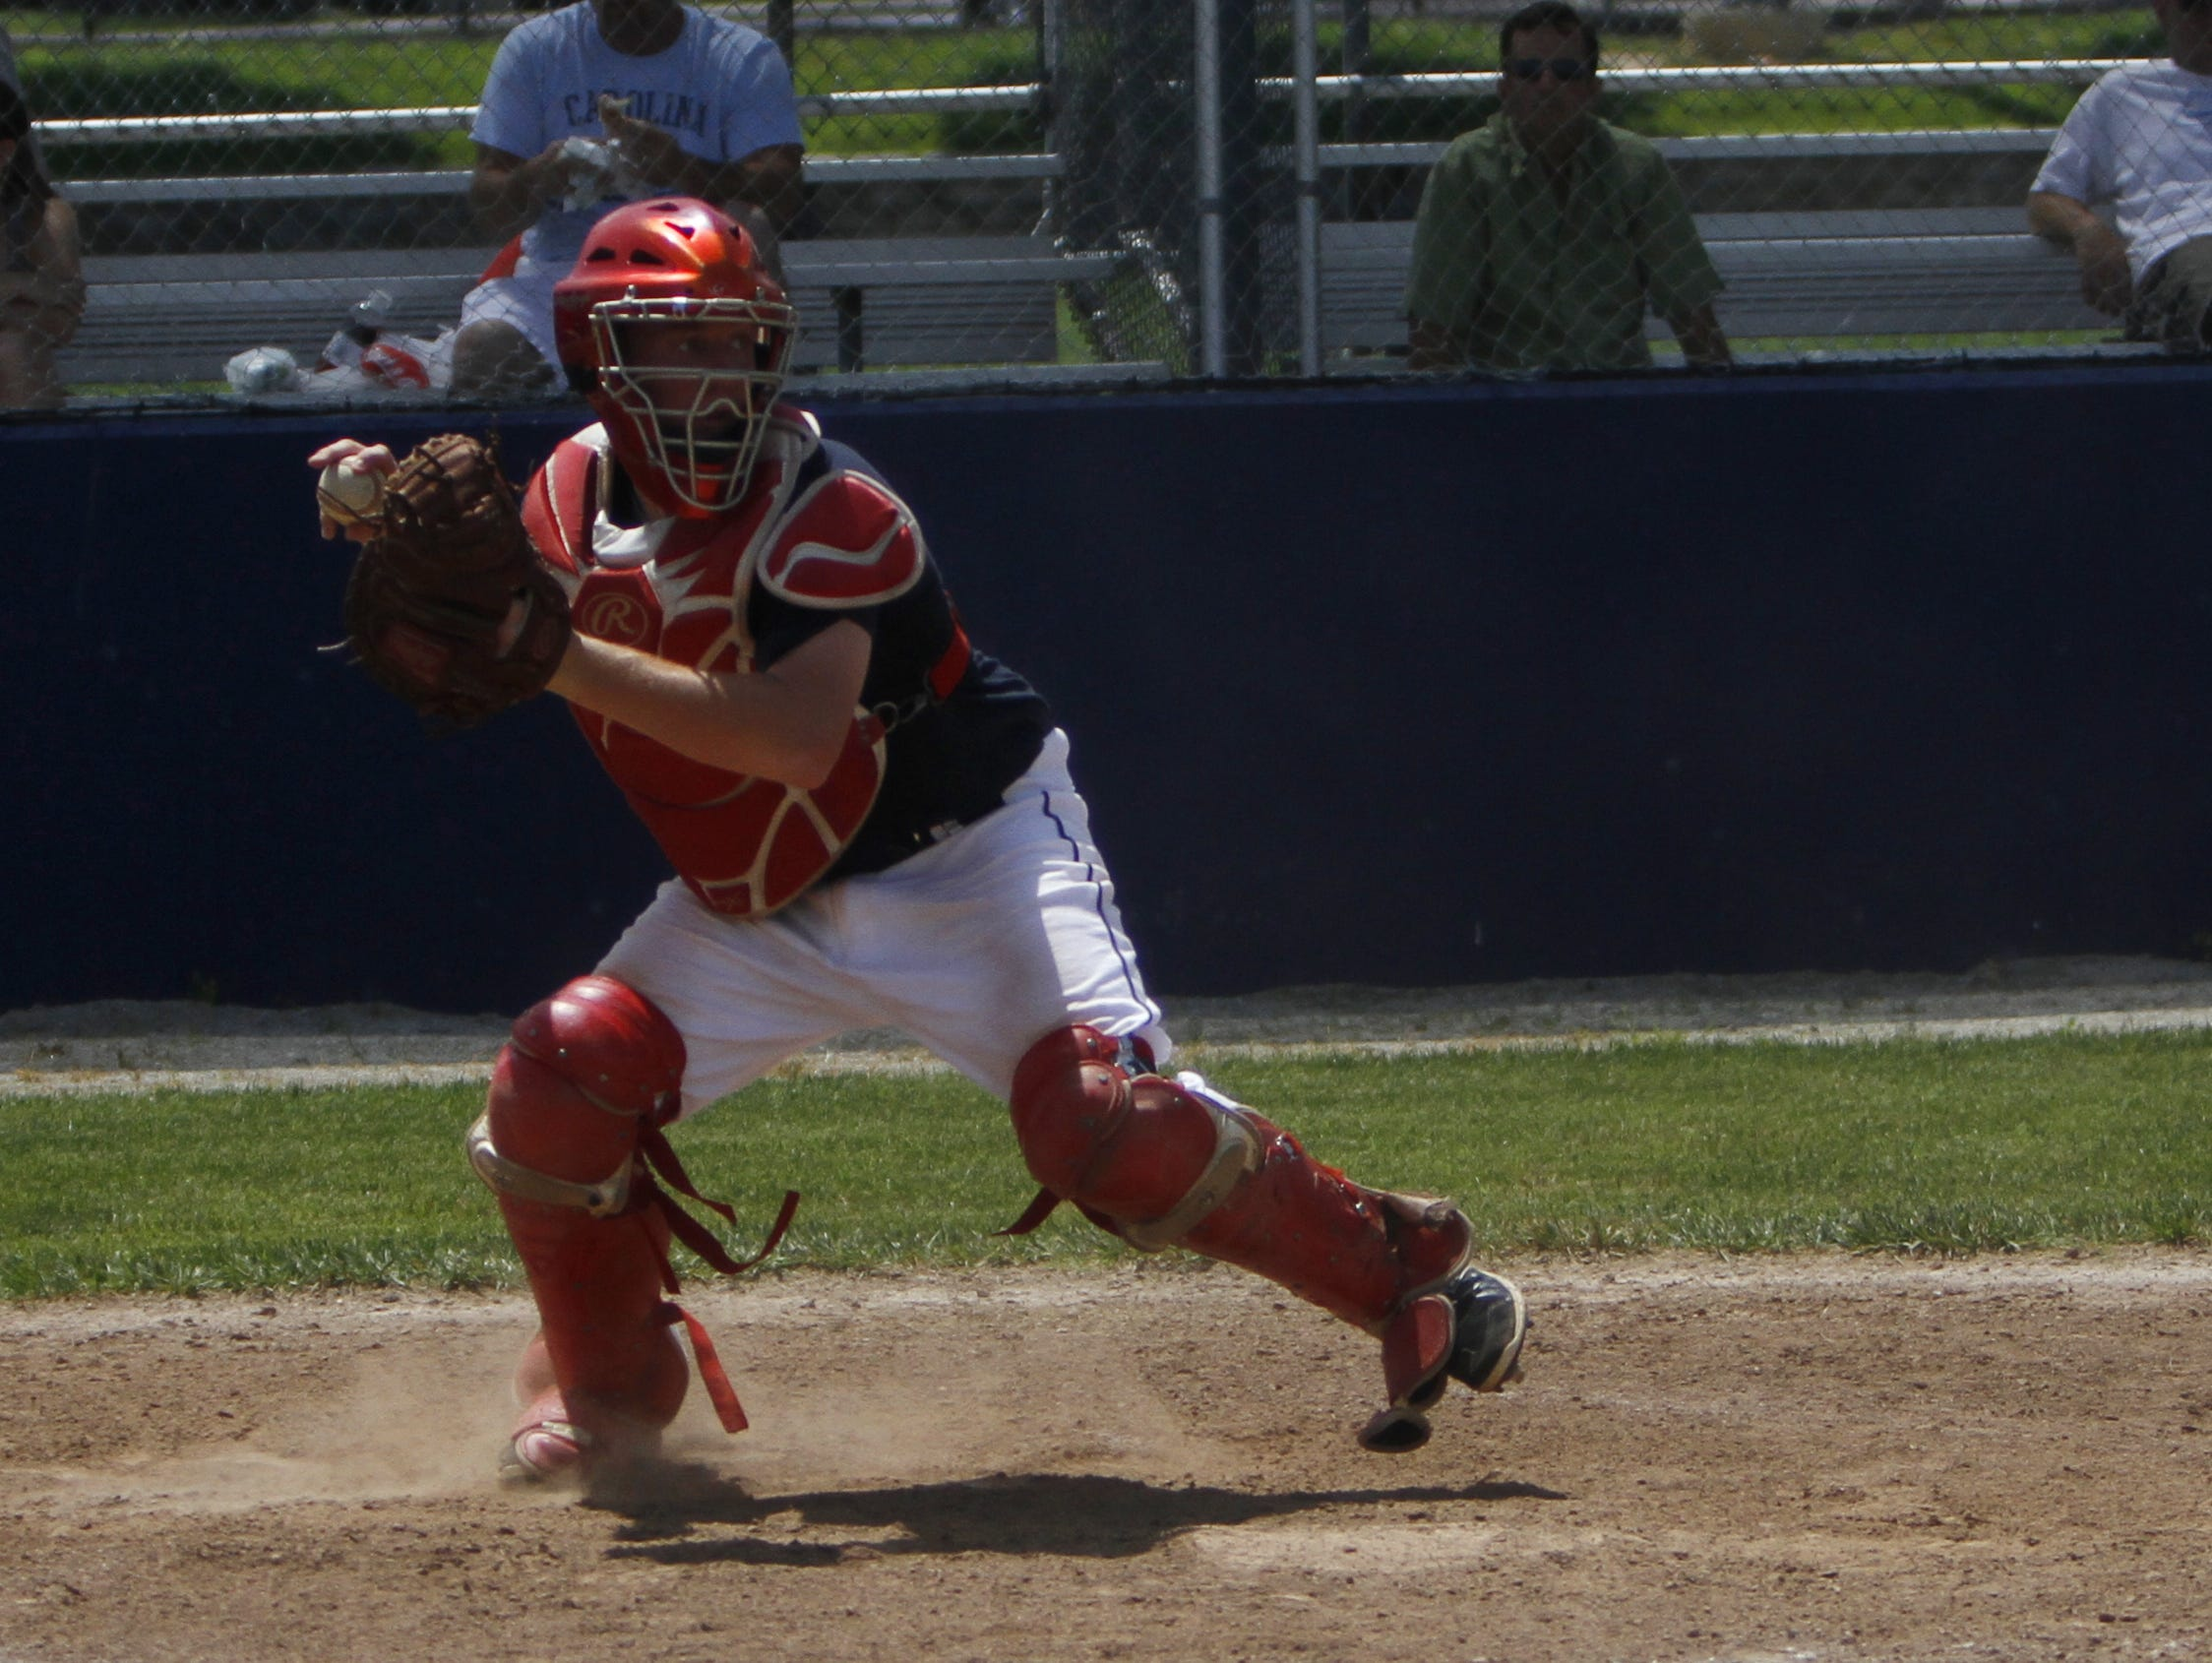 Nixa catcher Hayden Crabtree will help guide the Eagles' pitching staff in the spring of 2016.